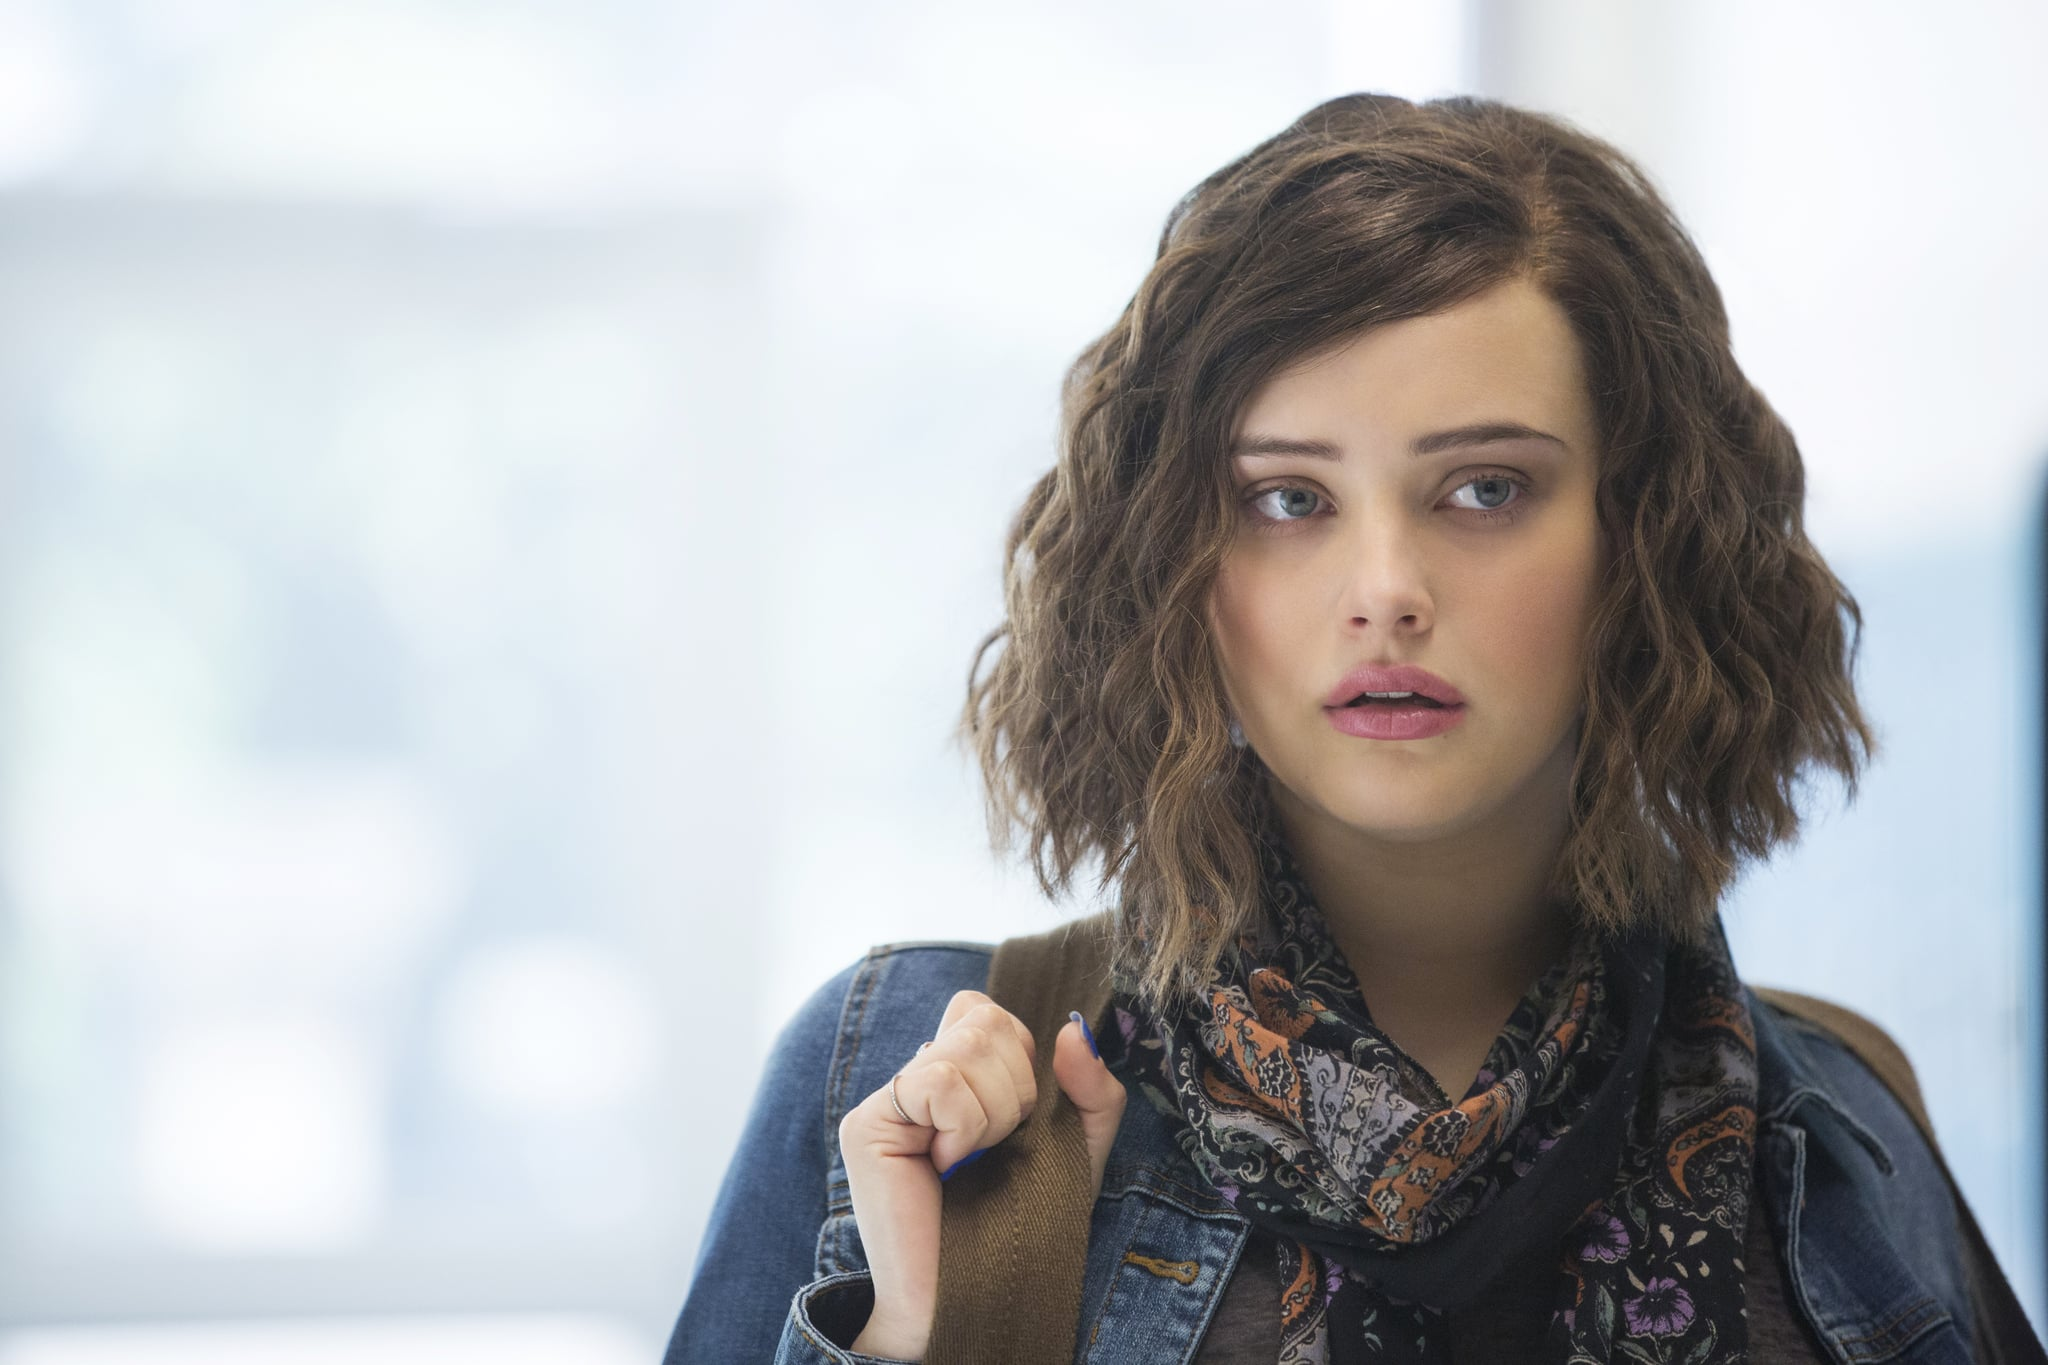 Quotes From Thirteen Reasons Why Fascinating Katherine Langford's Quotes About 13 Reasons Why Season 2